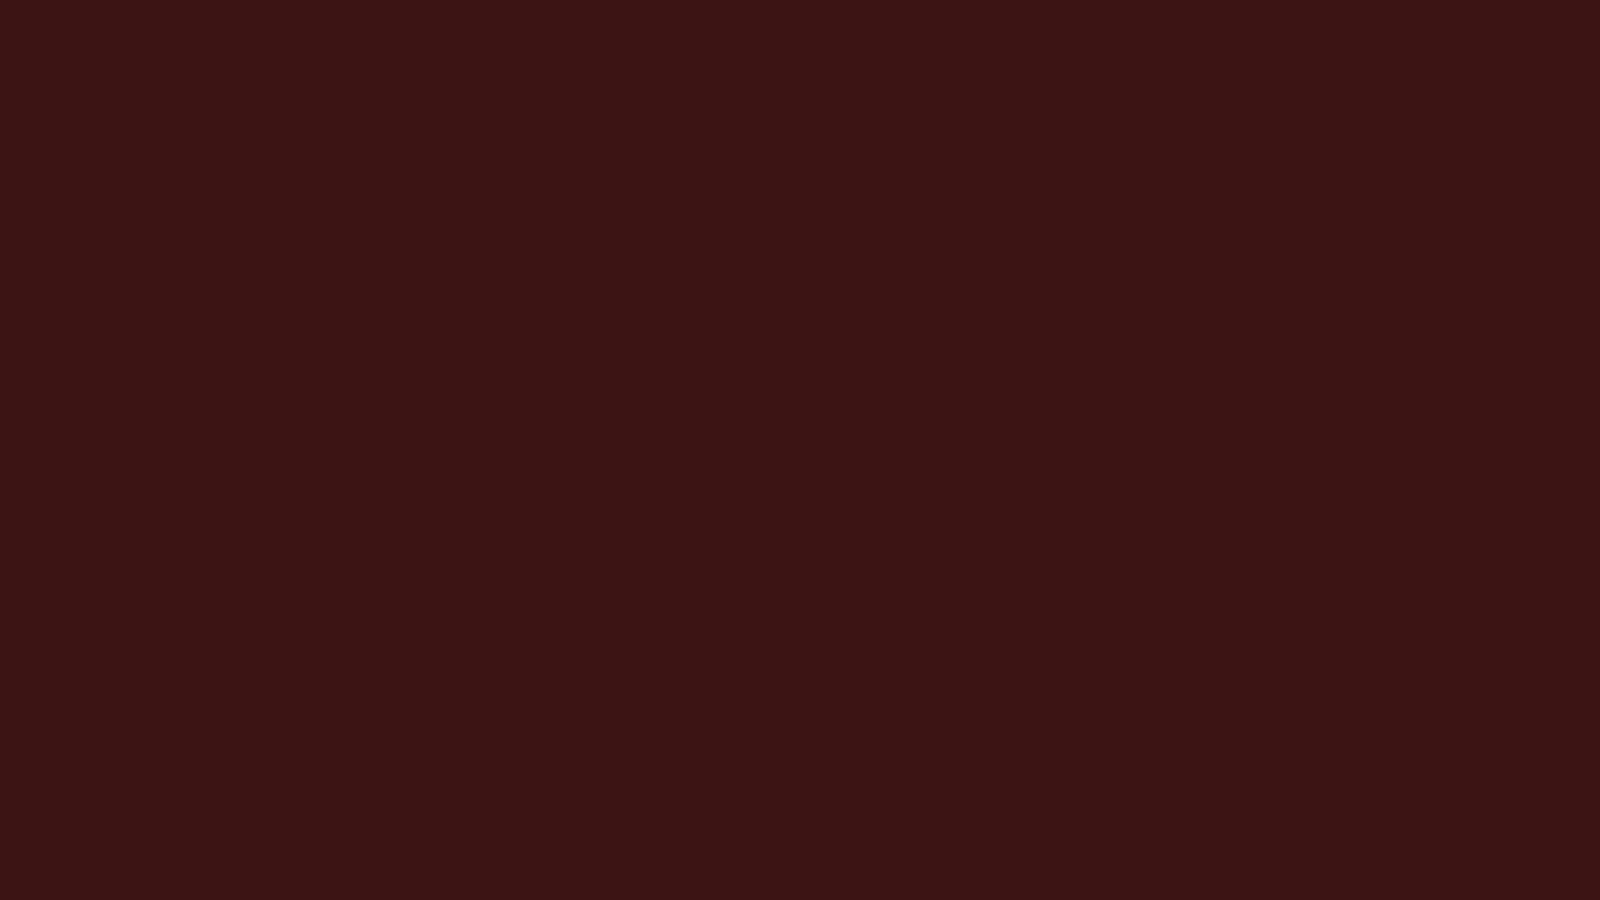 1600x900 Dark Sienna Solid Color Background